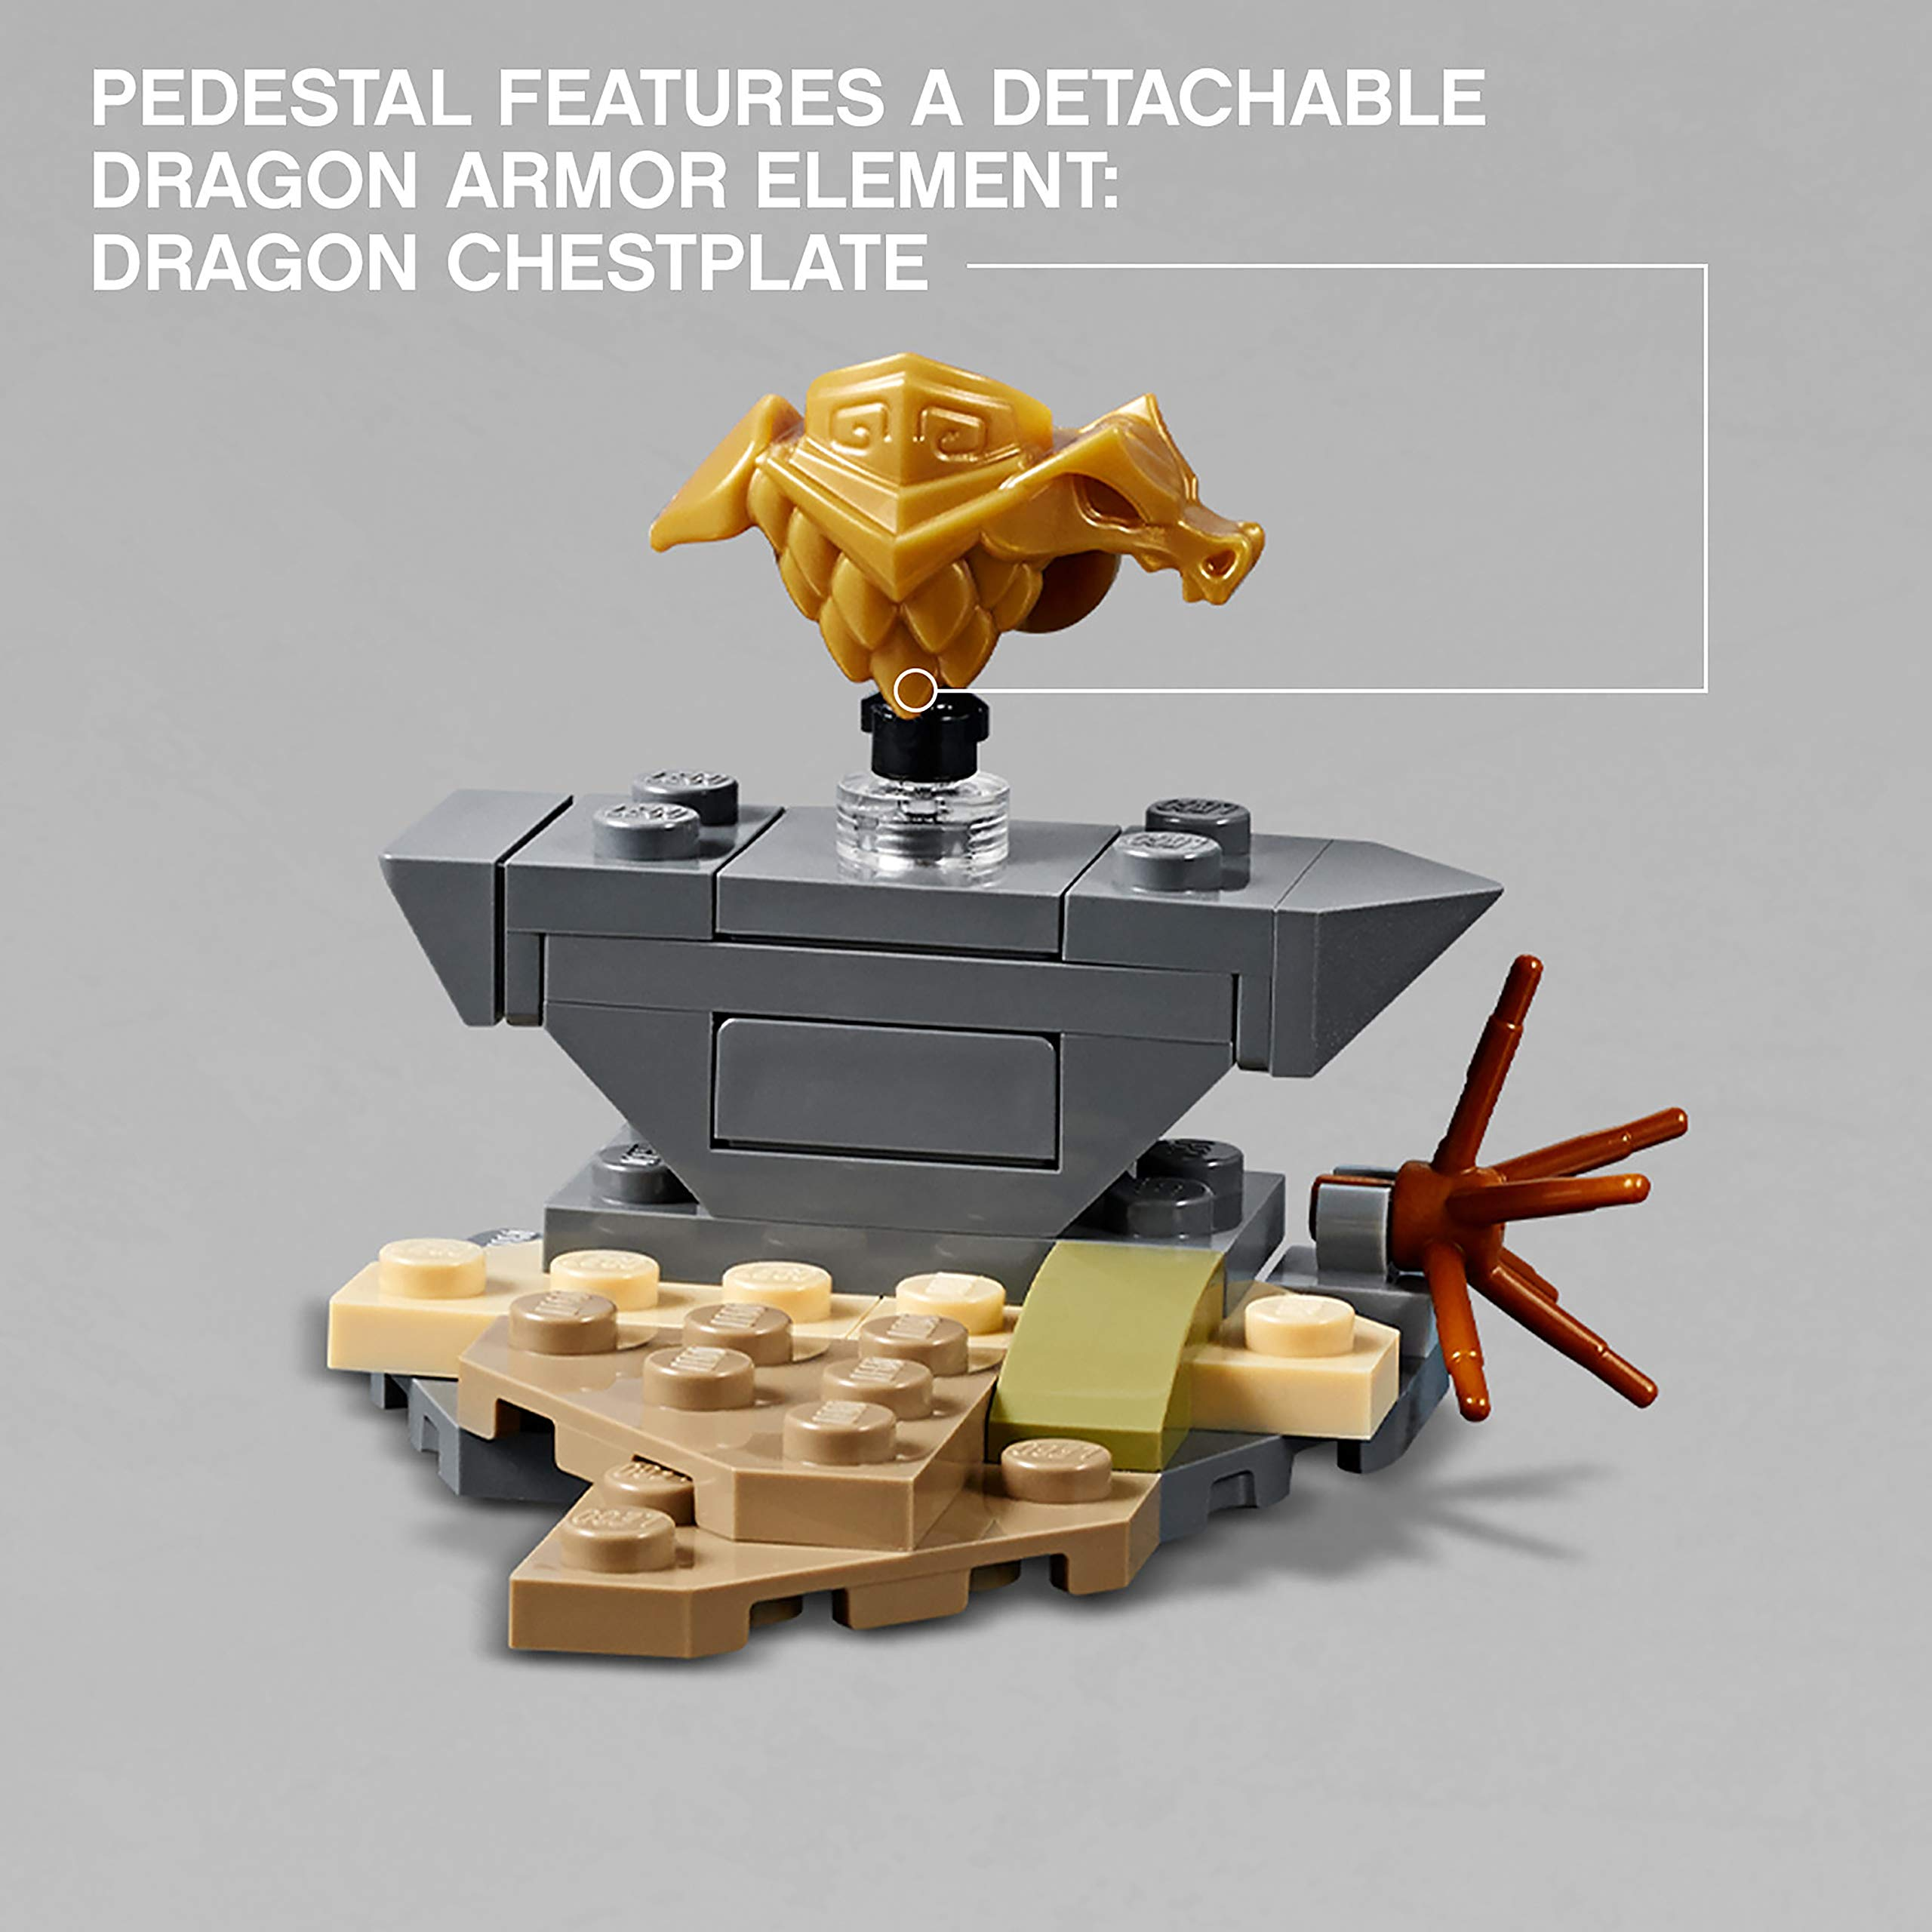 Lego 70652 Ninjago Stormbringer Dragon Toy Masters Of Spinjitzu Action Figure Brick Stella Story 10.11.2020 · the dragon armor is an item that was once worn by the first spinjitzu masterbefore he left the realm of oni and dragons. lego 70652 ninjago stormbringer dragon toy masters of spinjitzu action figure